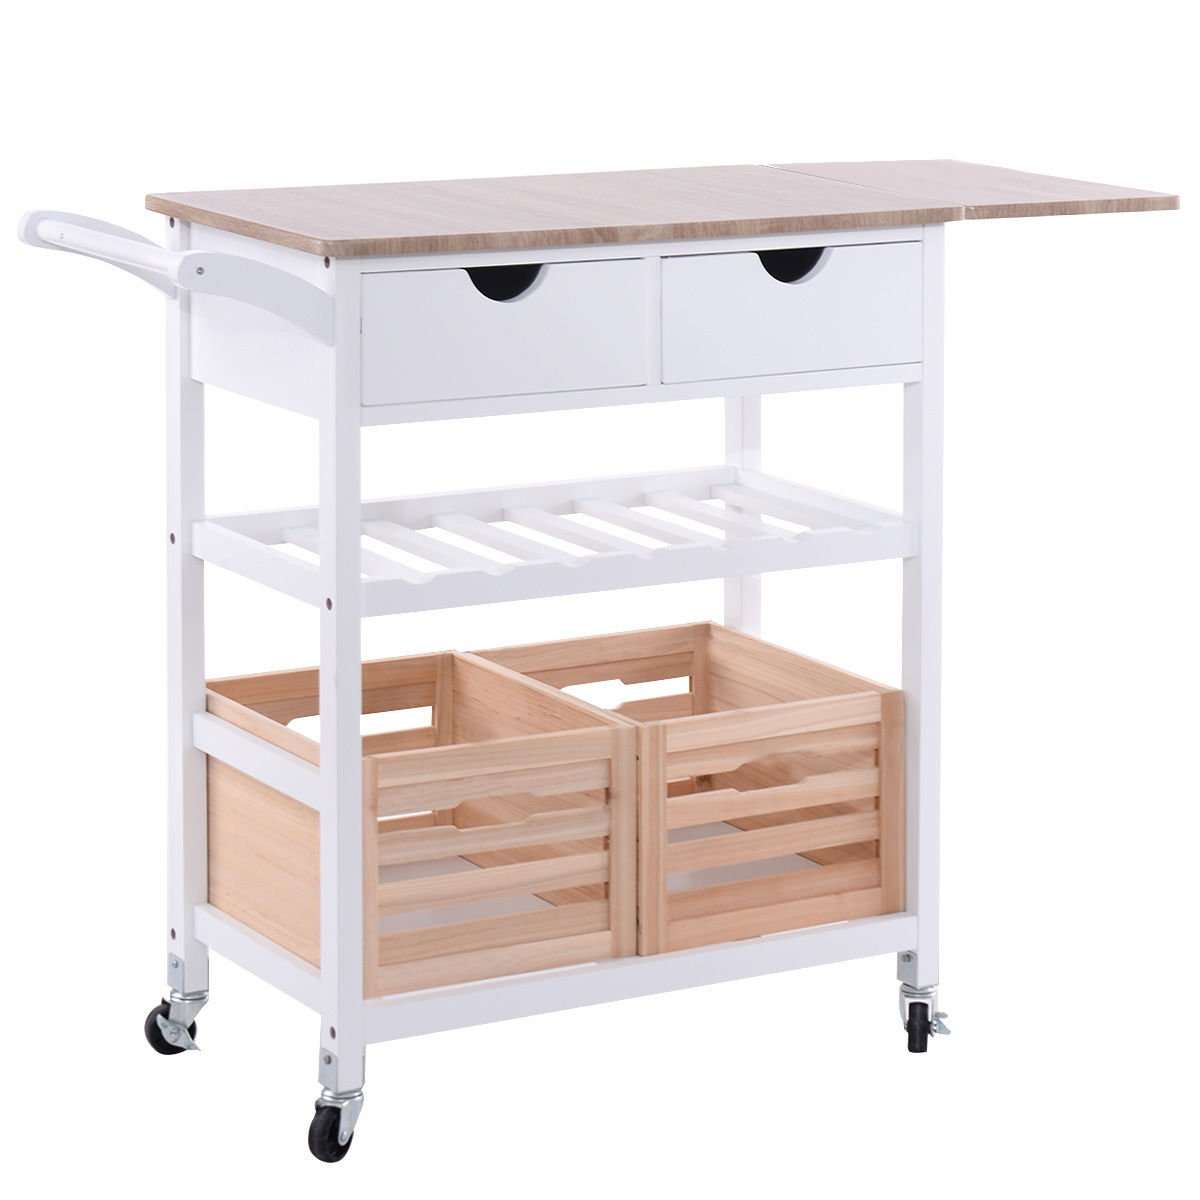 Superieur Amazon.com   Costzon Kitchen Trolley Island Cart Dining Storage With  Drawers Basket Wine Rack   Kitchen Islands U0026 Carts